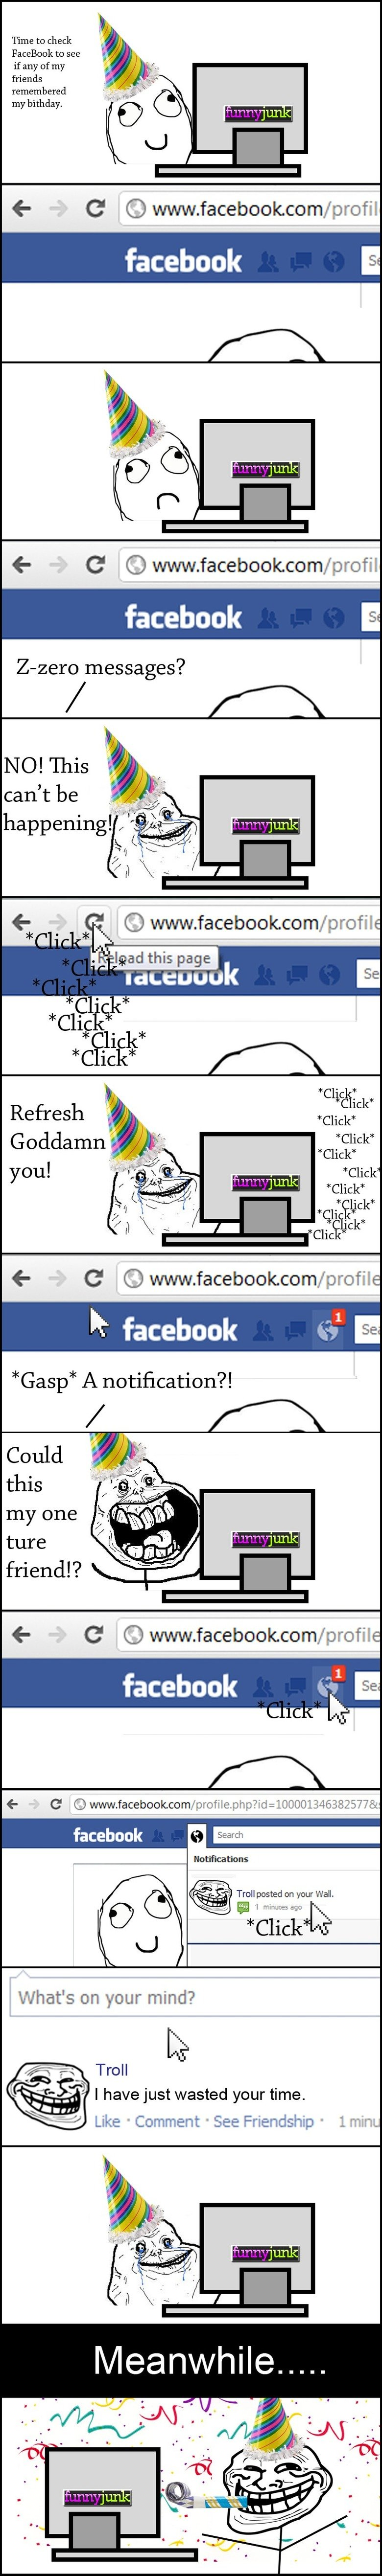 Birthday Surprise.. . Time to check Facebook to see if any of my friends remembered my bithday, C C) wwy, facebook. com/ profil facebook 6 C C) wwy, facebookers